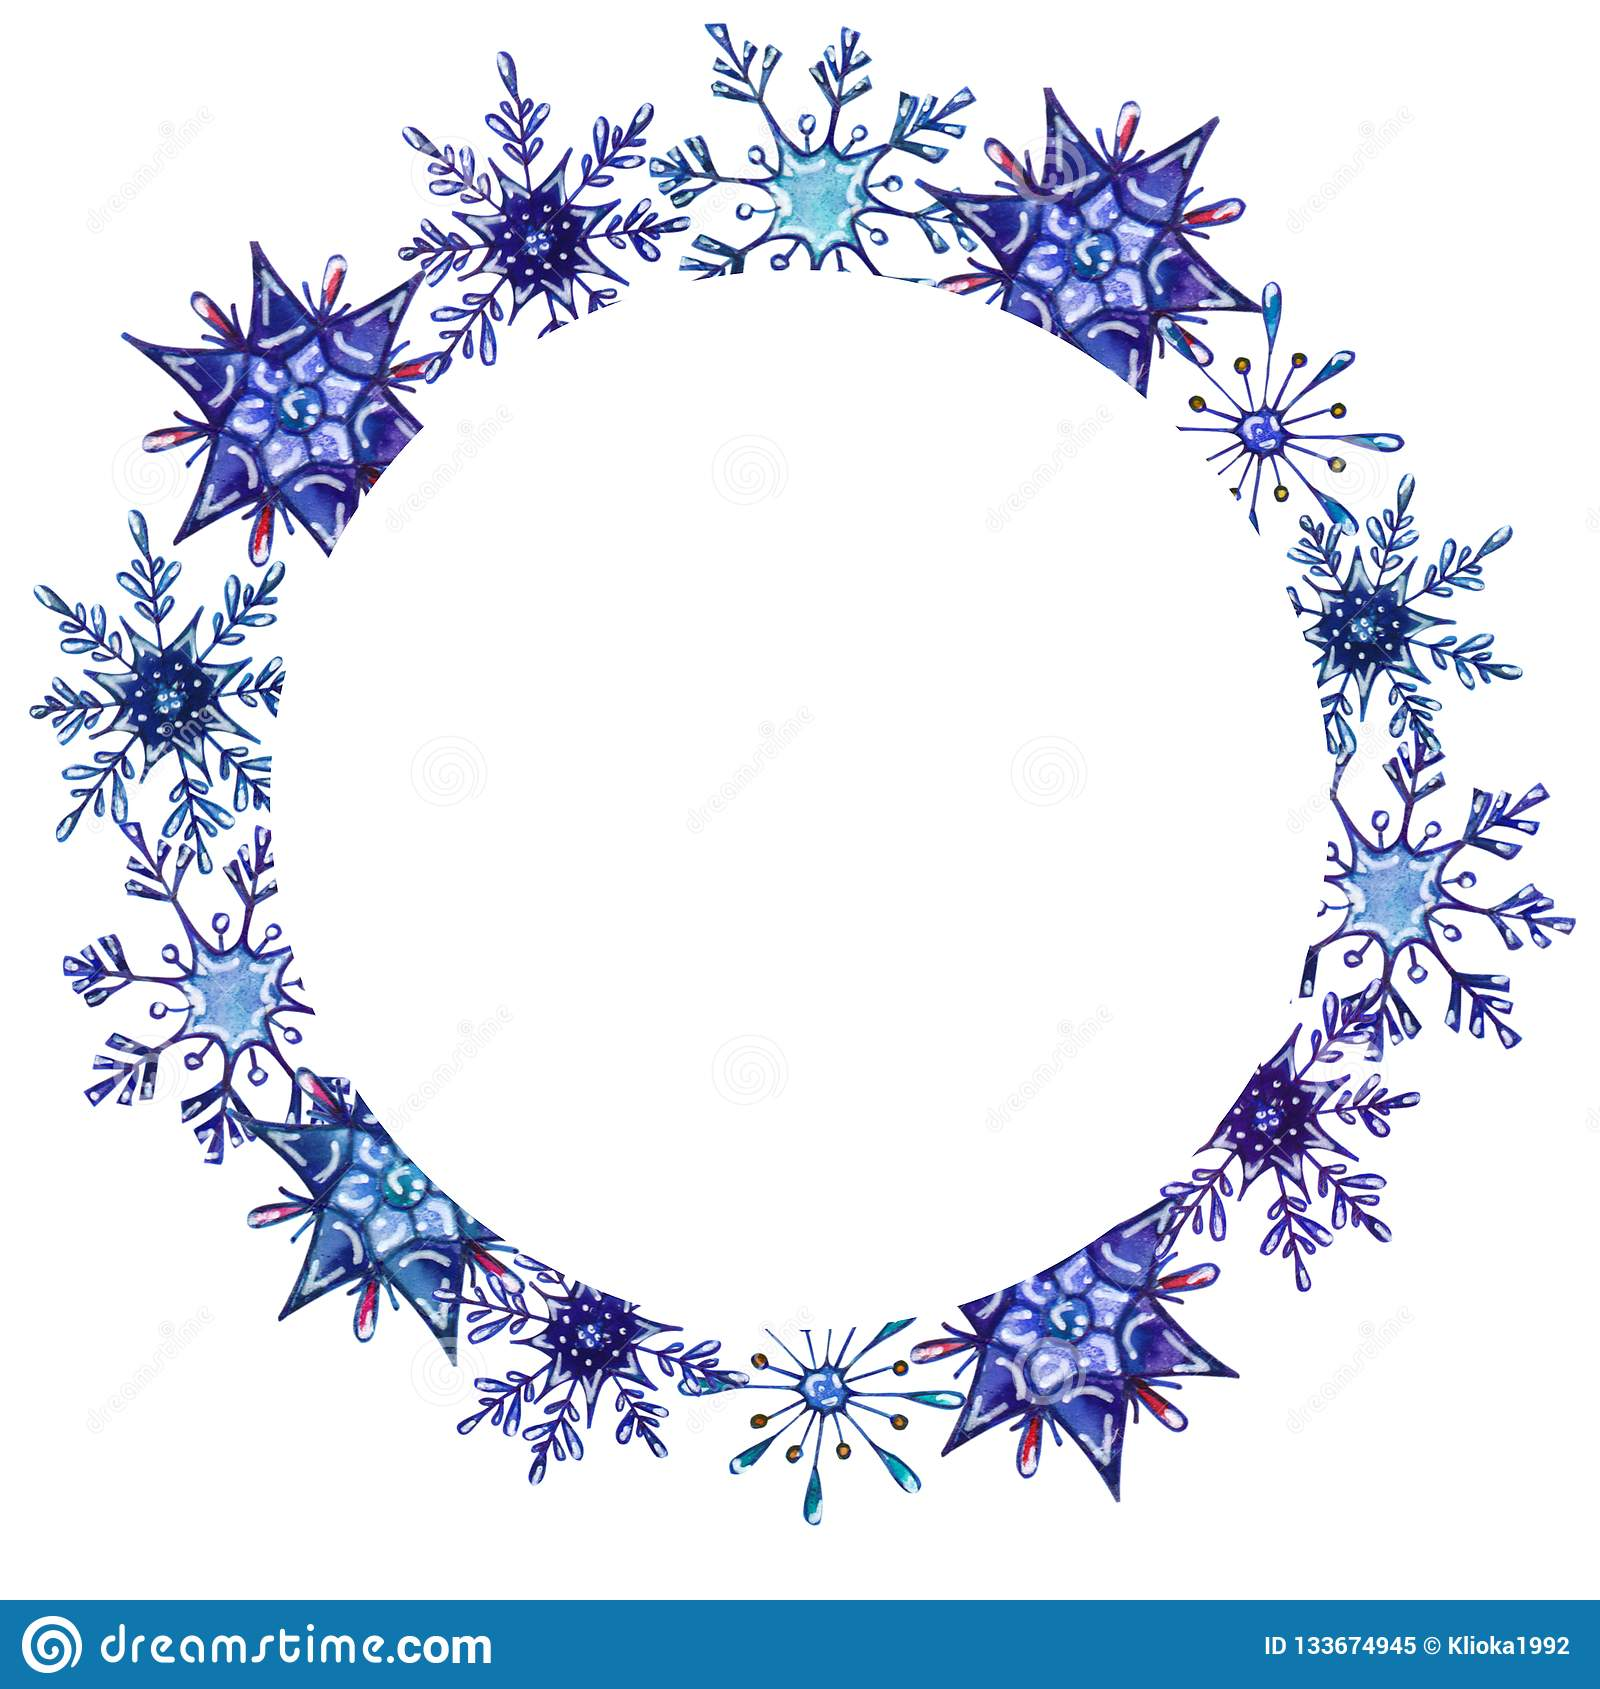 round snowflake template  Watercolor Snowflakes Round Frame Template Stock ...